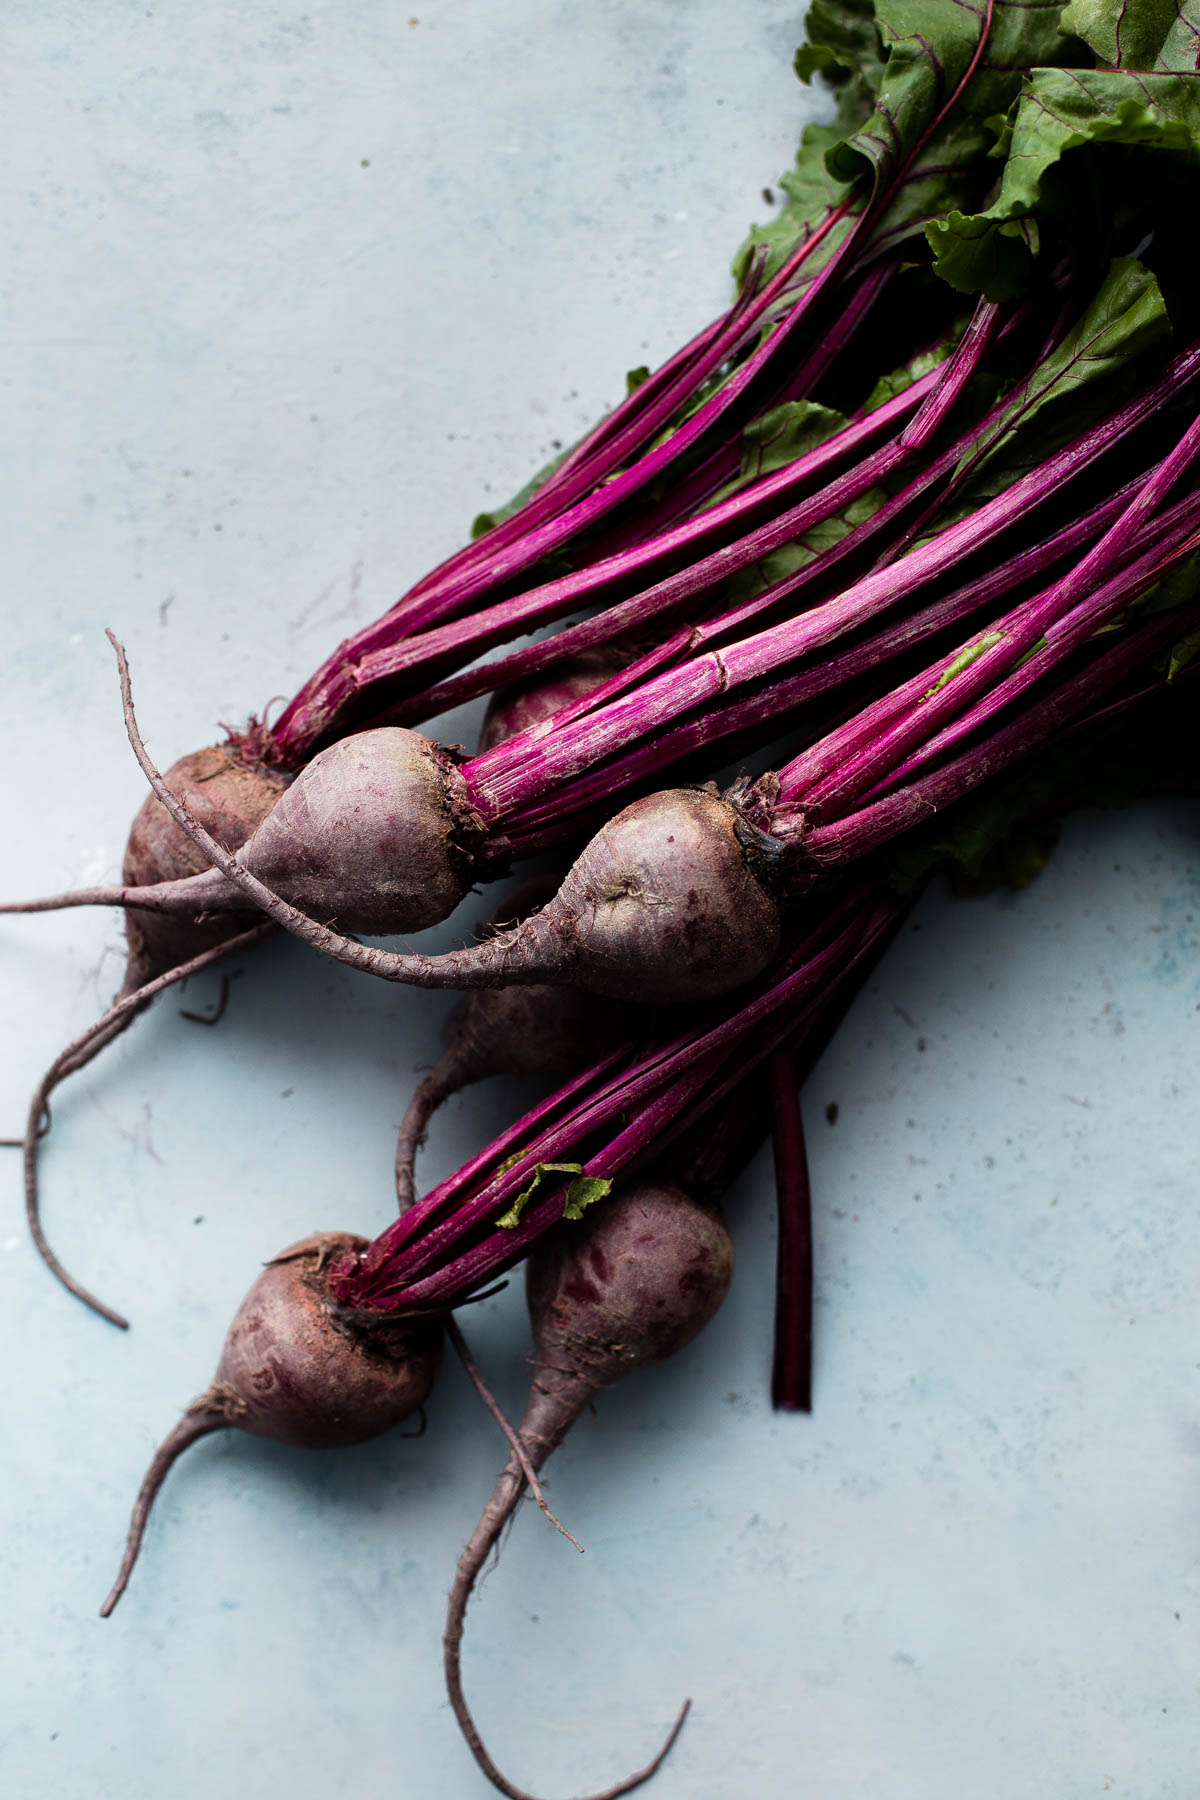 Whole Red Beets